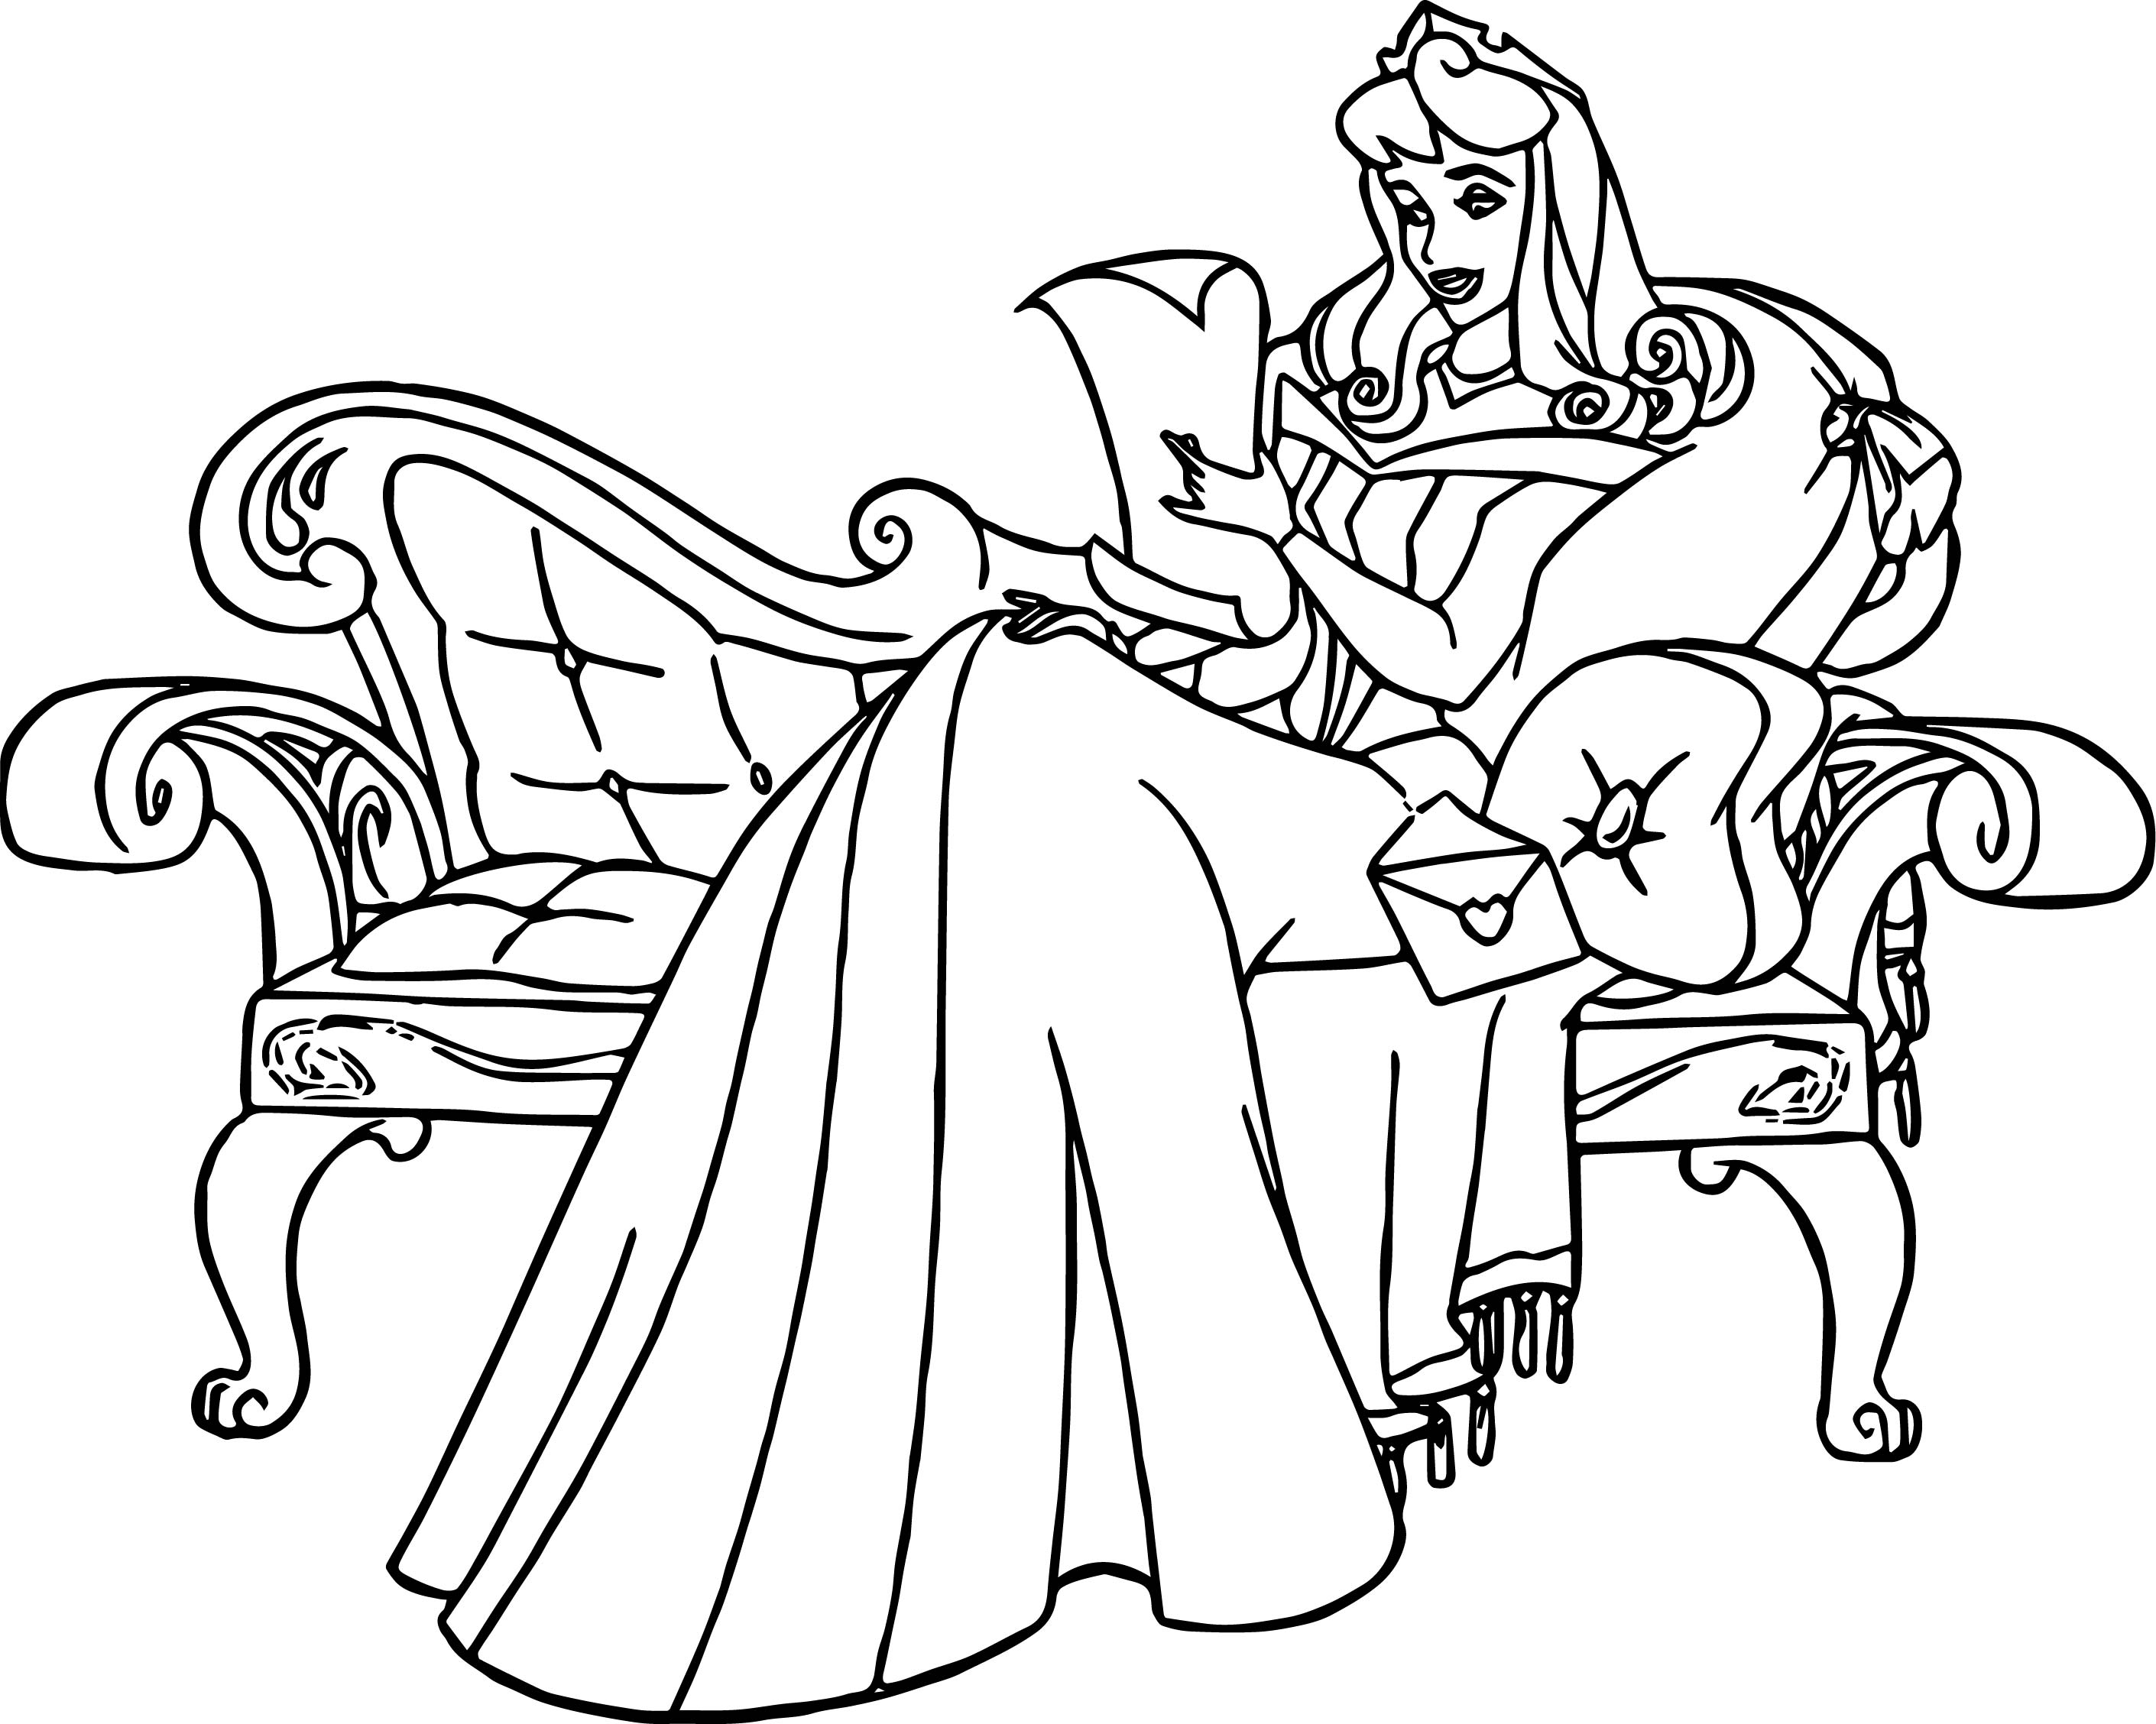 Aurora Chaise Cartoon Coloring Page